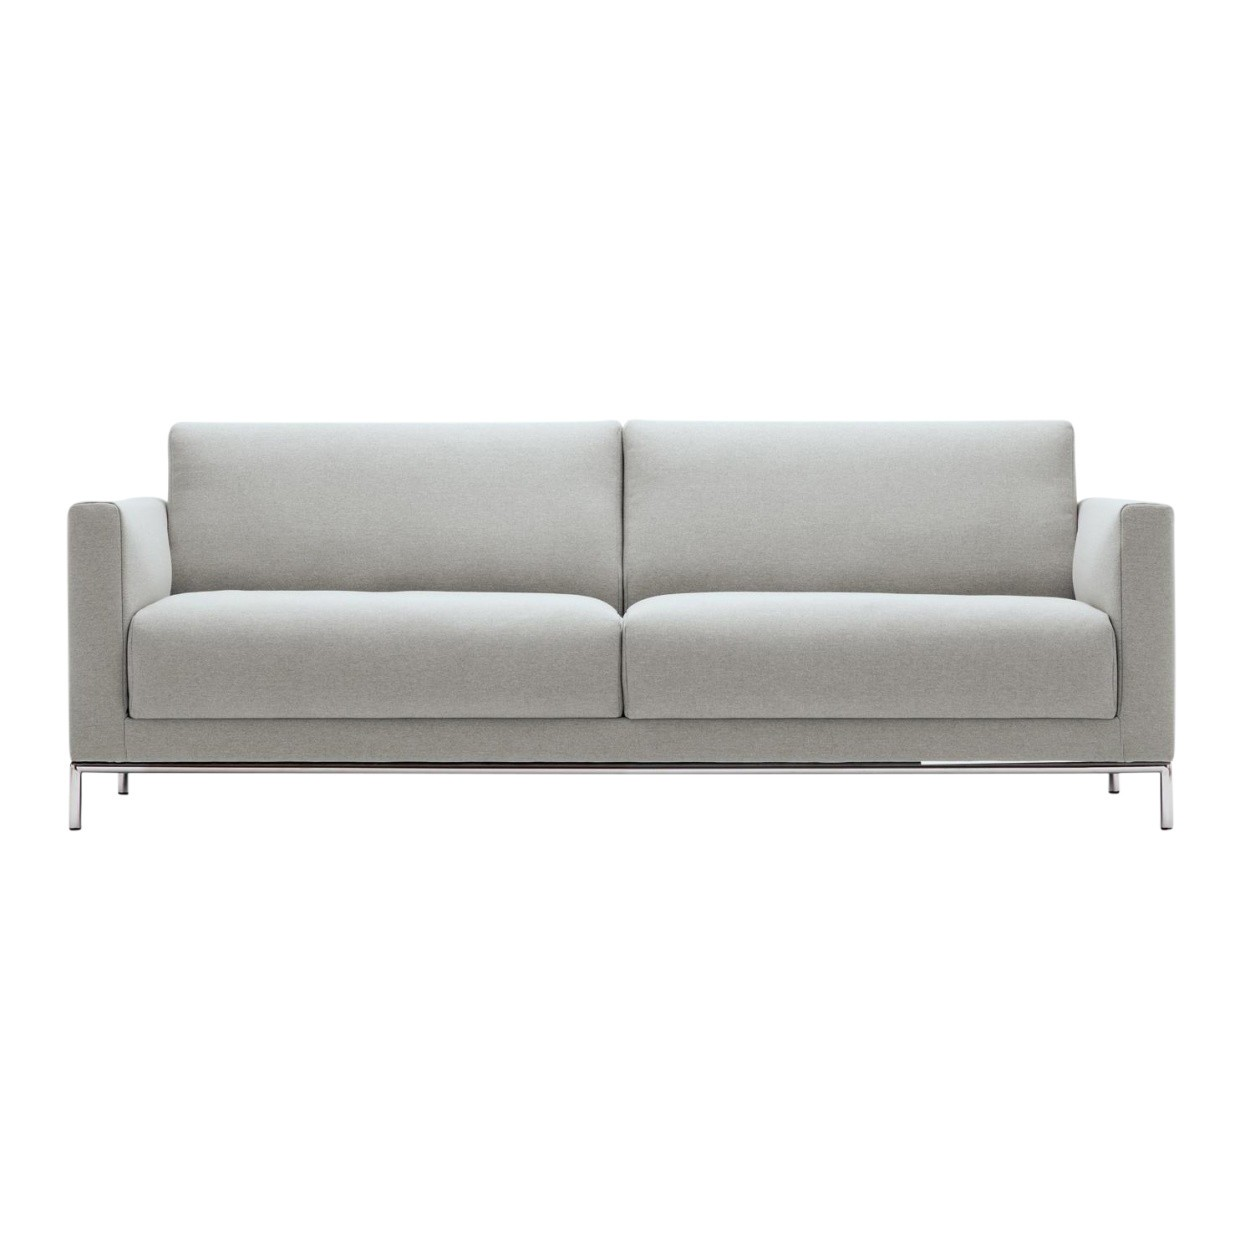 Freistil Rolf Benz Freistil 141 3 Seater Sofa Frame Chrome Ambientedirect